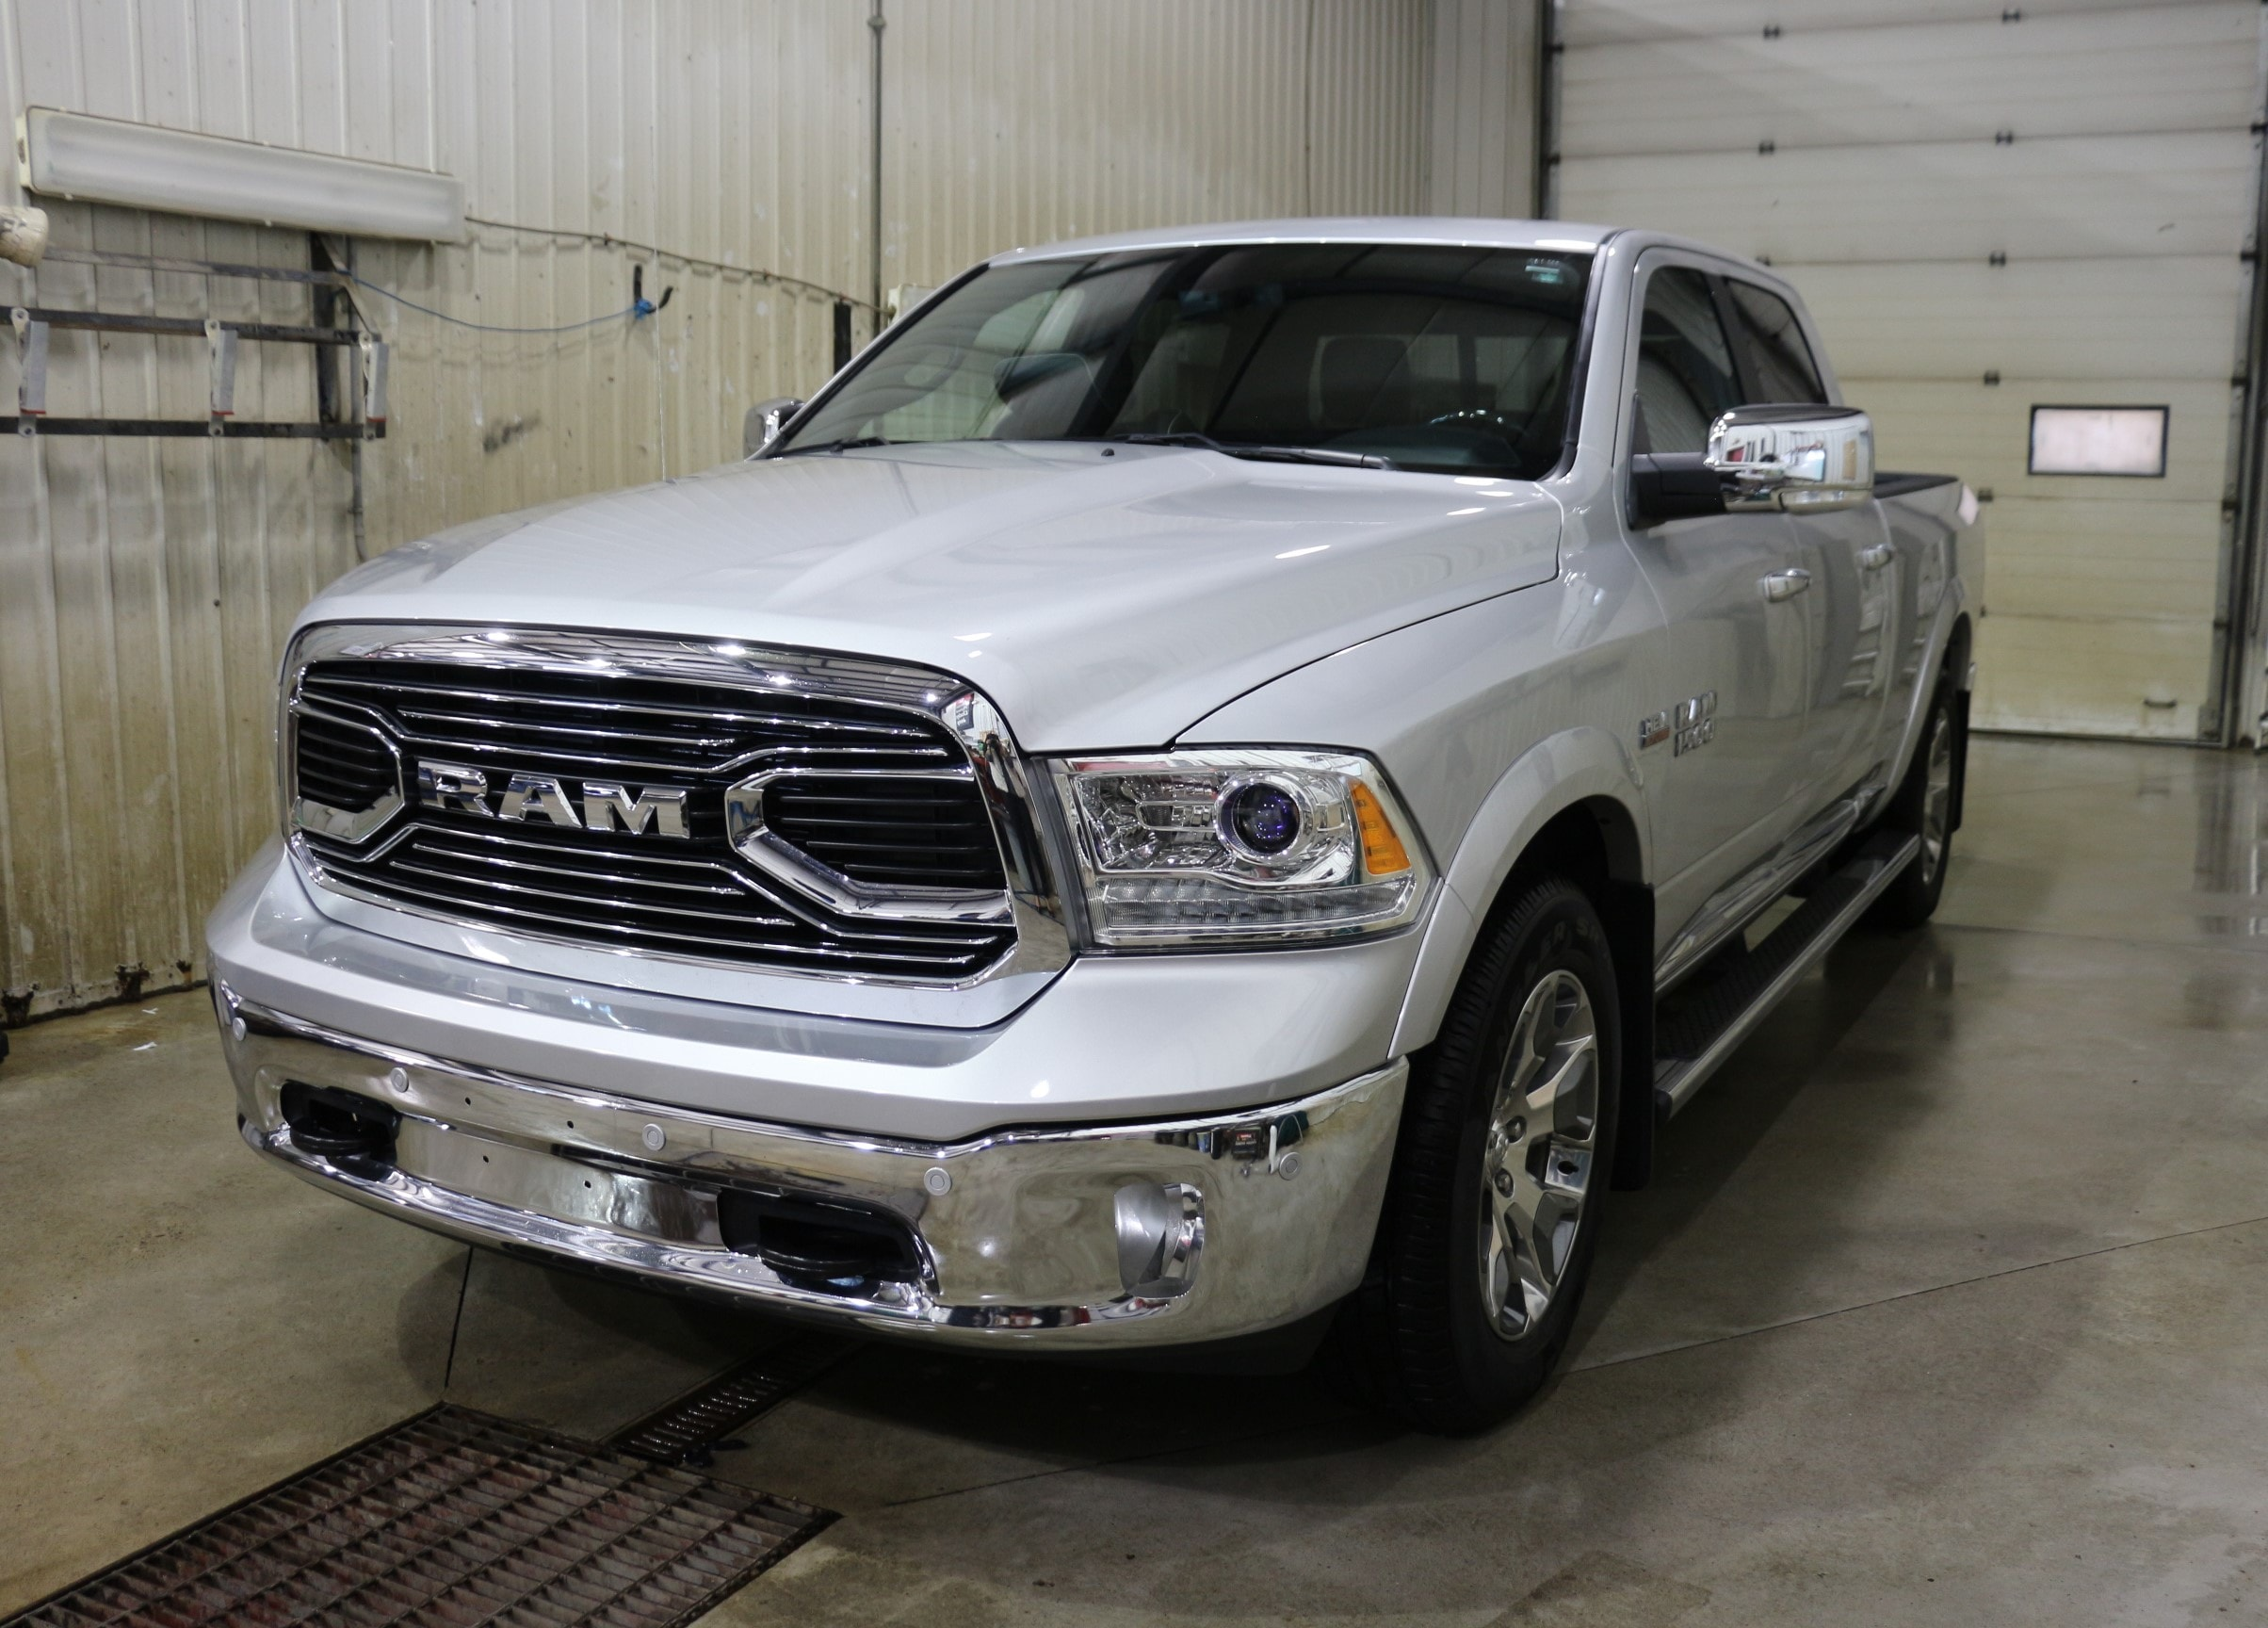 2017 Ram 1500 Longhorn Limited Crew Cab 4x4 Pickup Truck